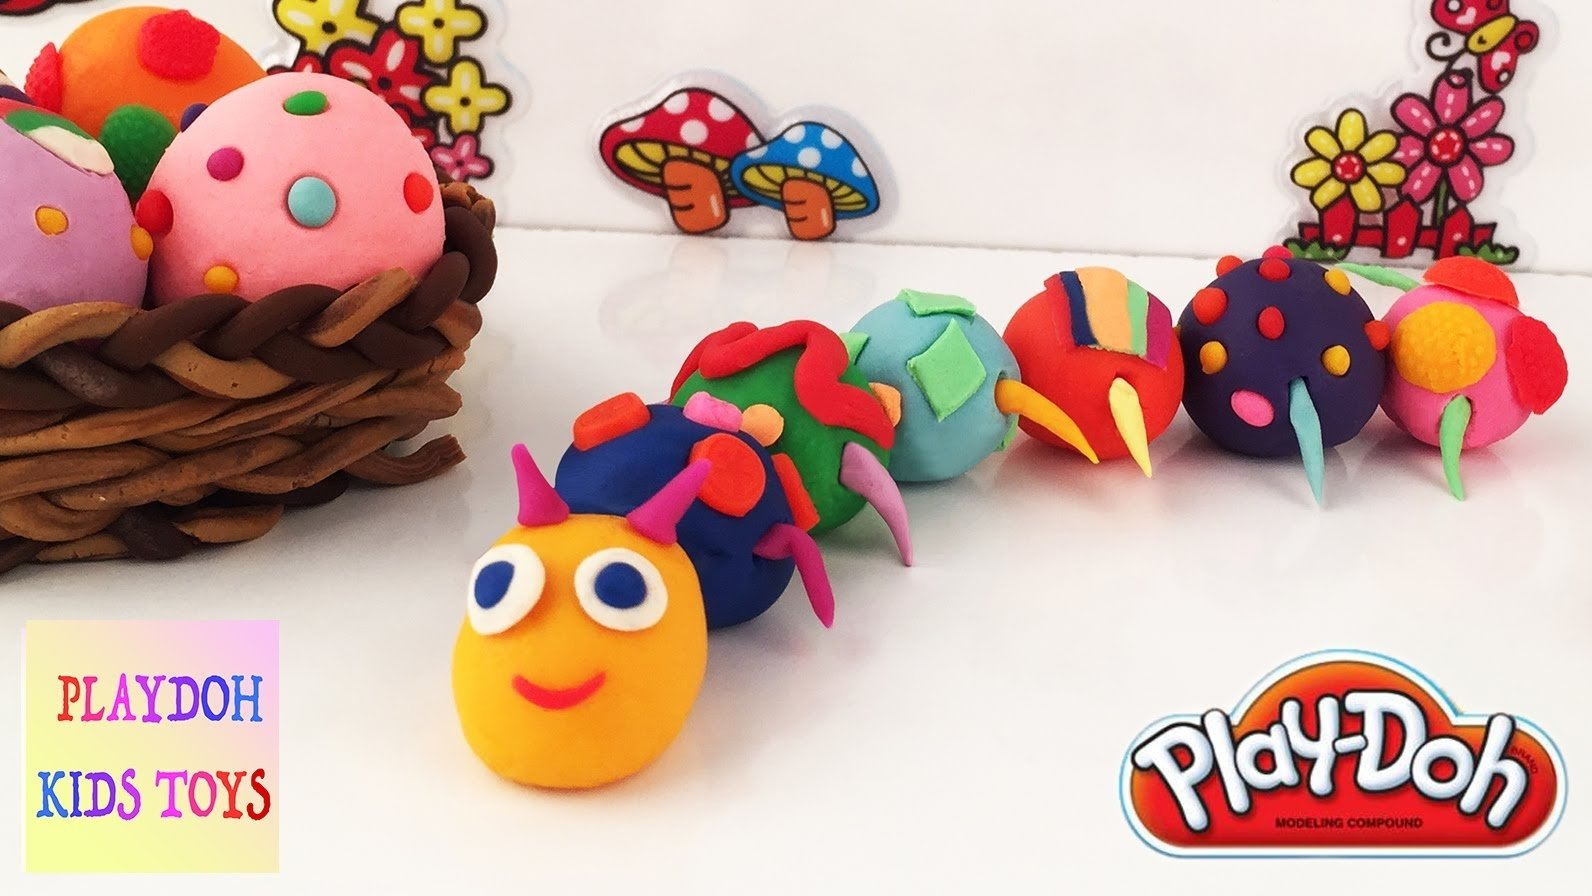 play doh kids fun crafts, animals playdough learning activities